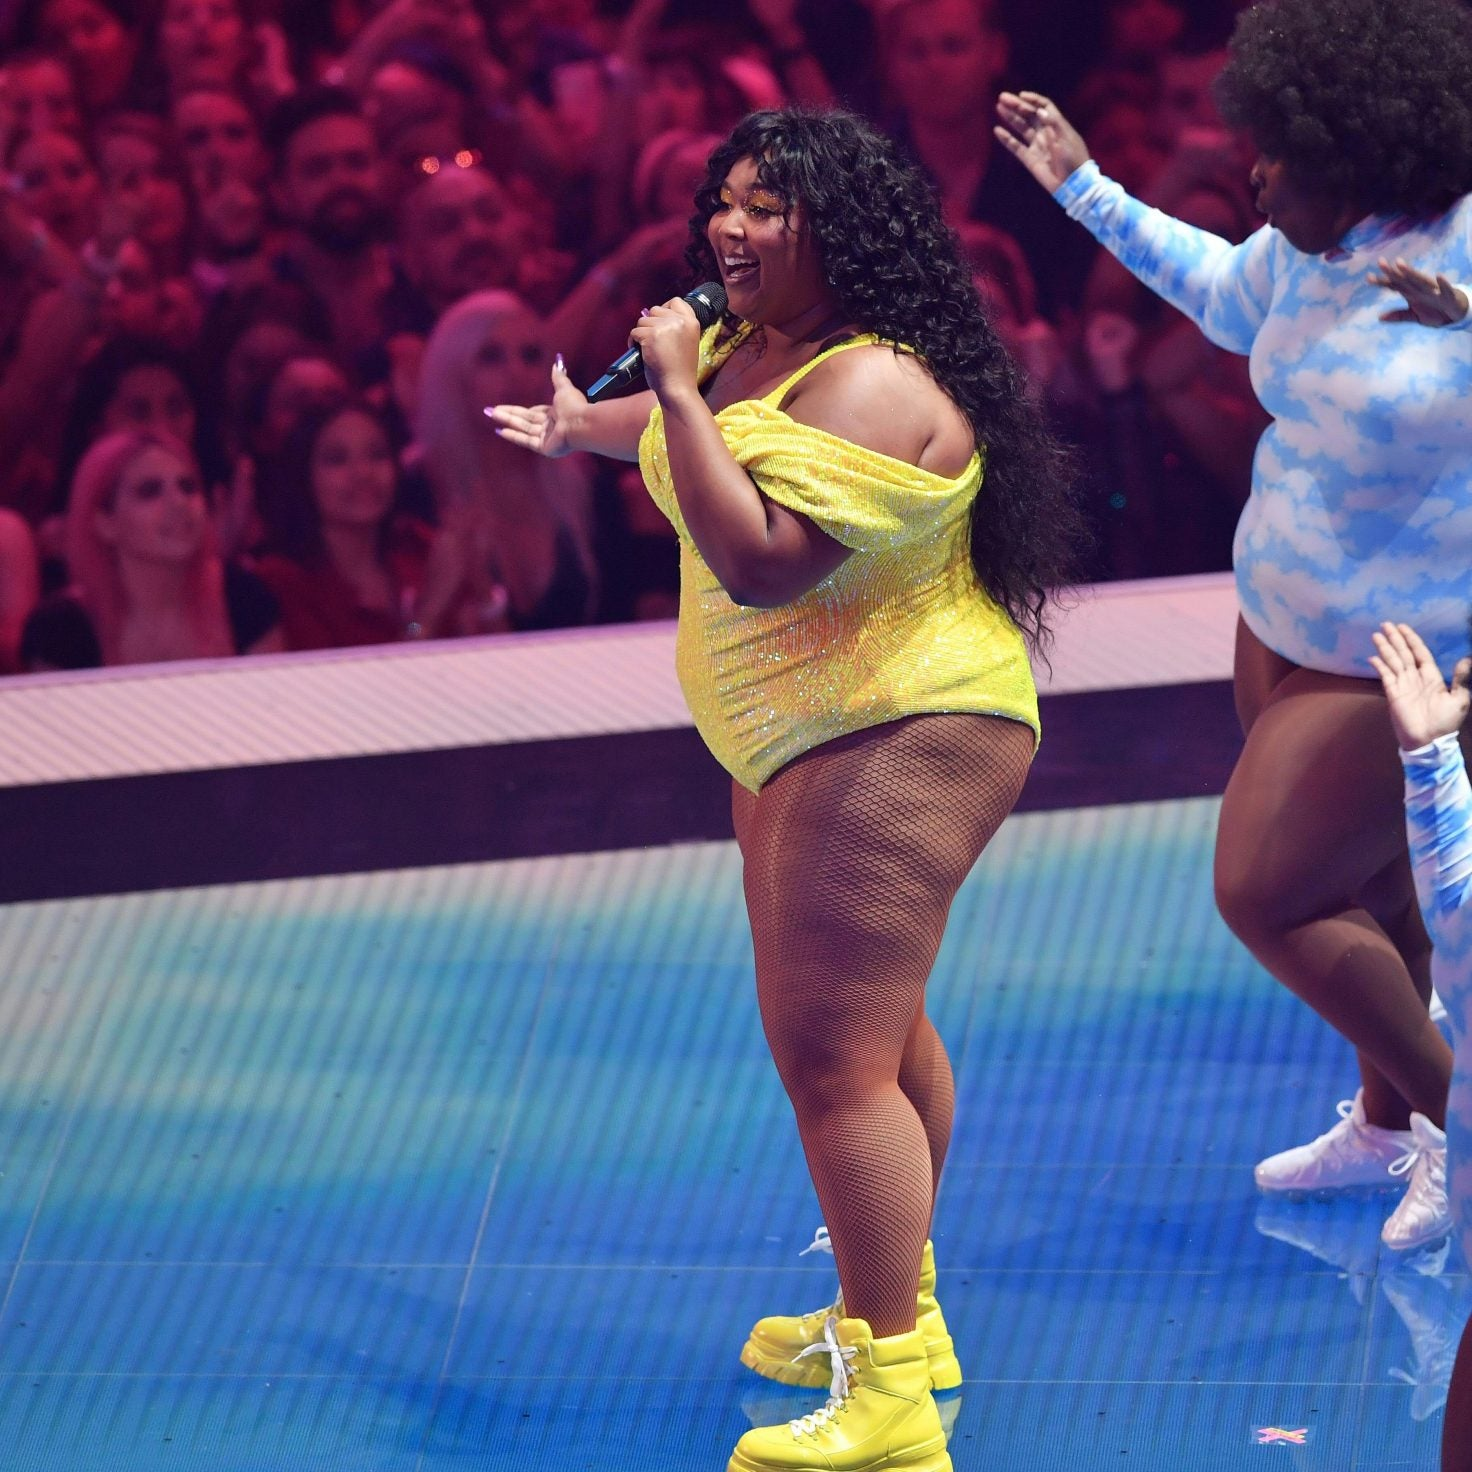 Lizzo Receives Major Love From Rihanna After She Stole The Show At The VMAs